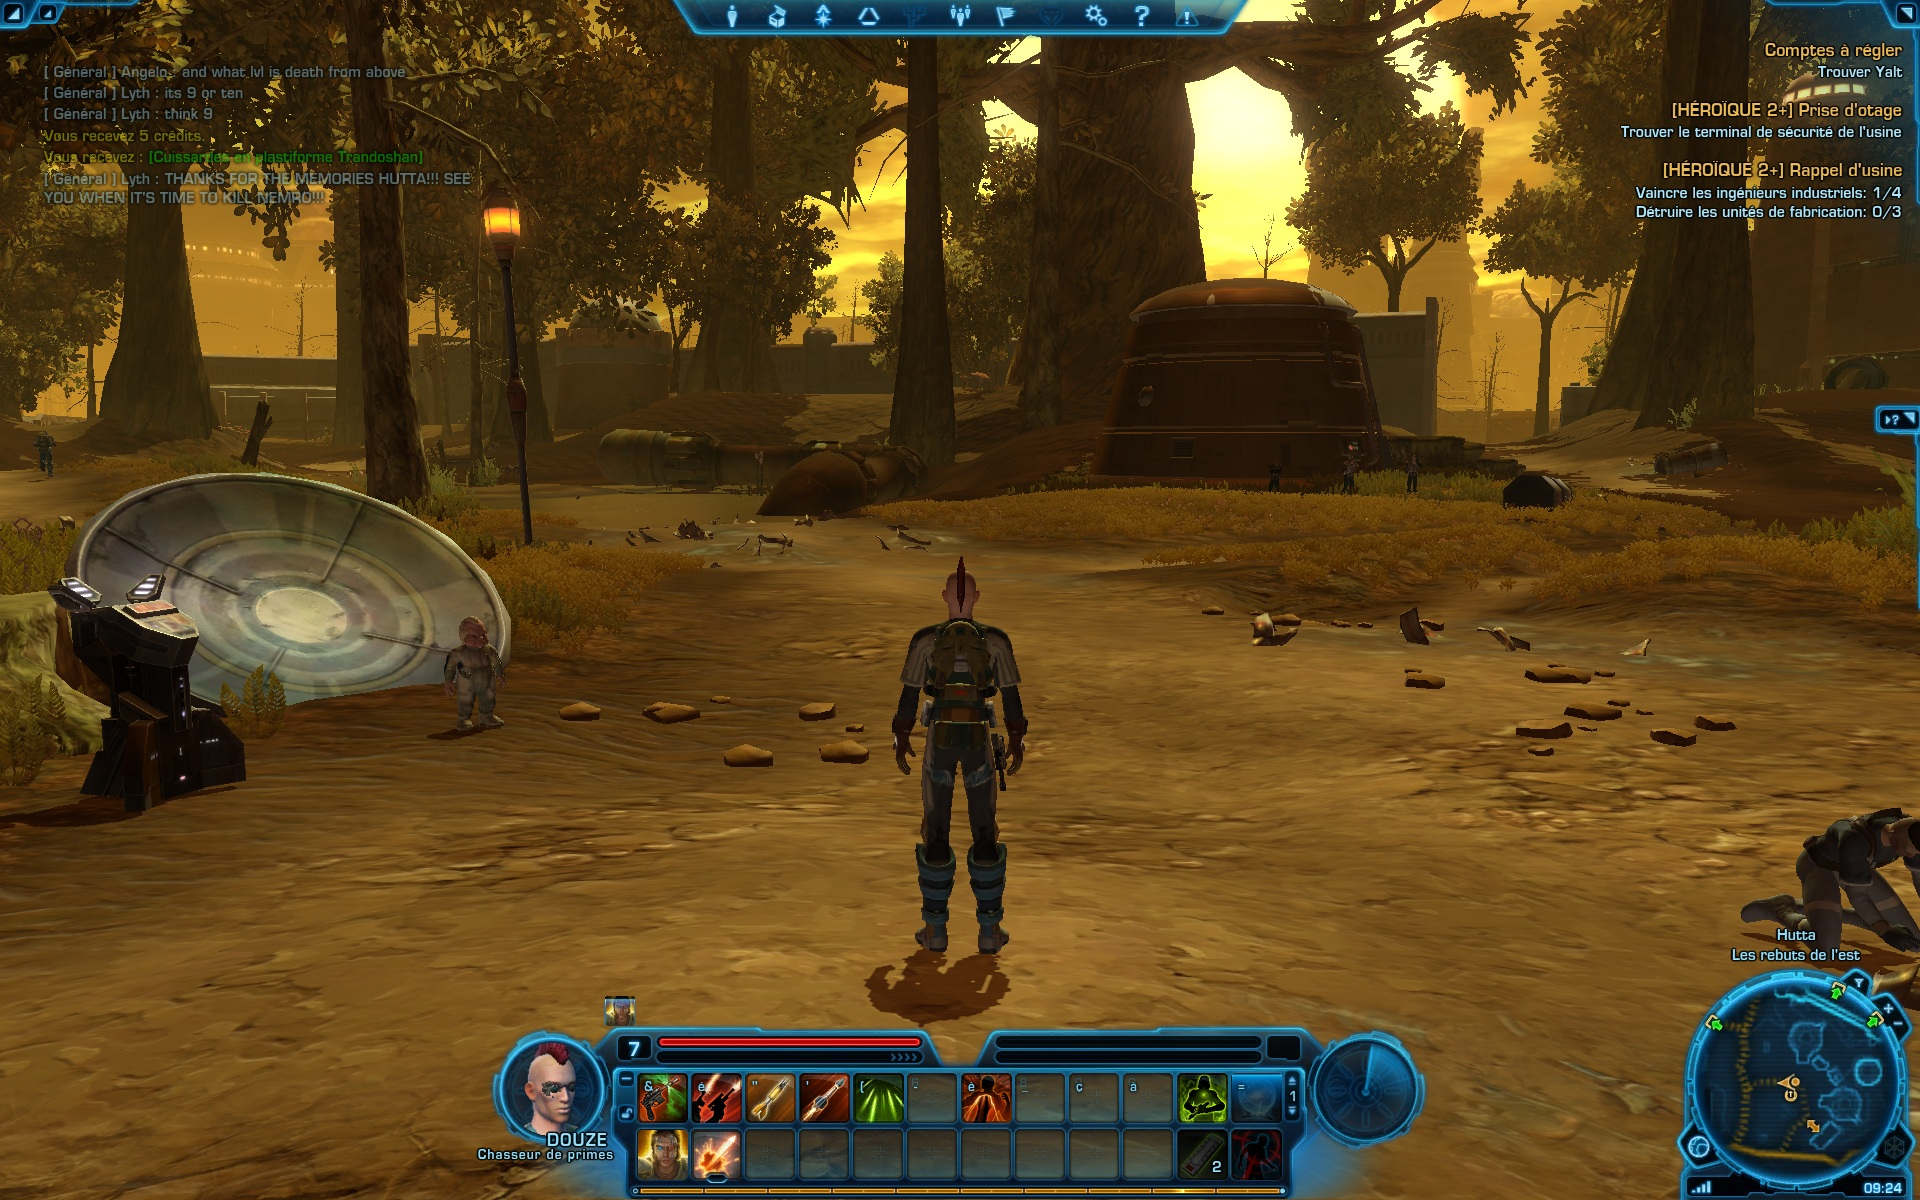 swtor beta - exterieur planete hutta - 1920 x 1200 - swtor beta - exterieur planete hutta